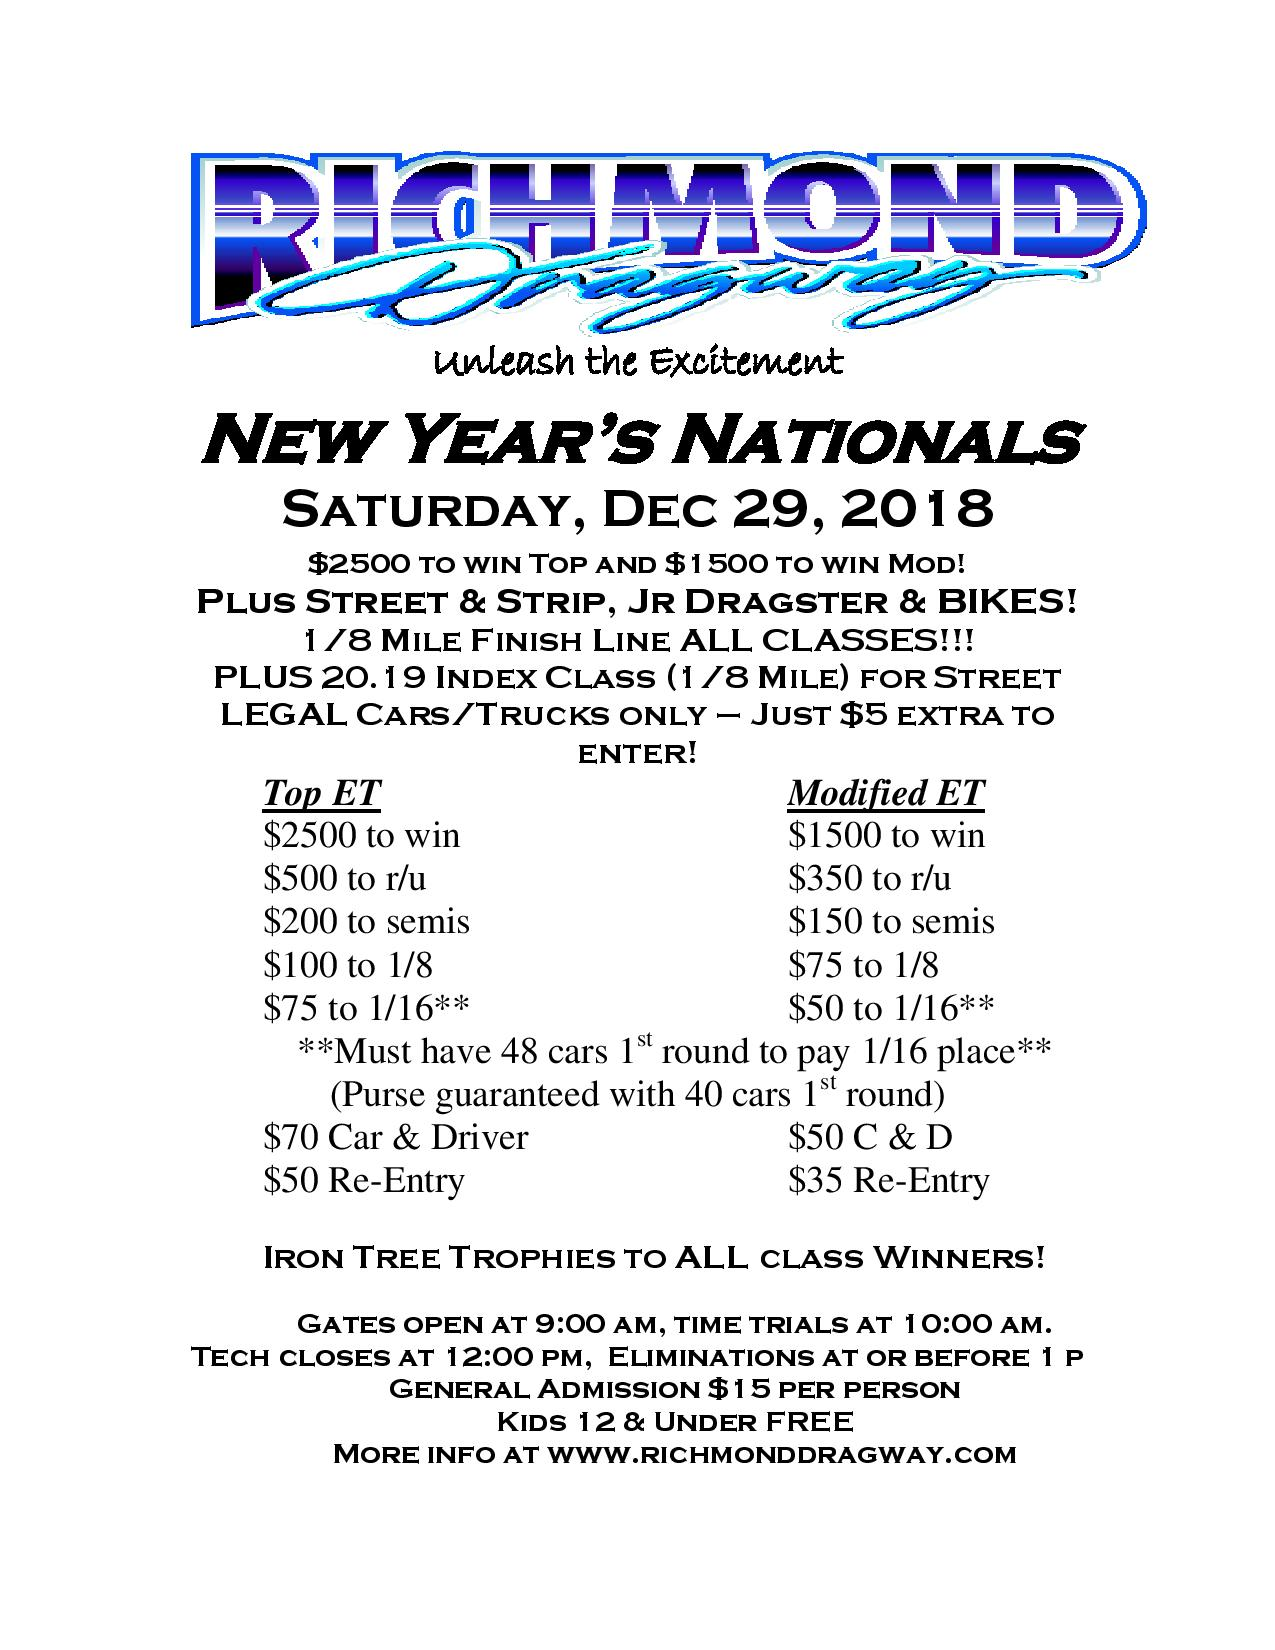 richmond dragway | unleash the excitement